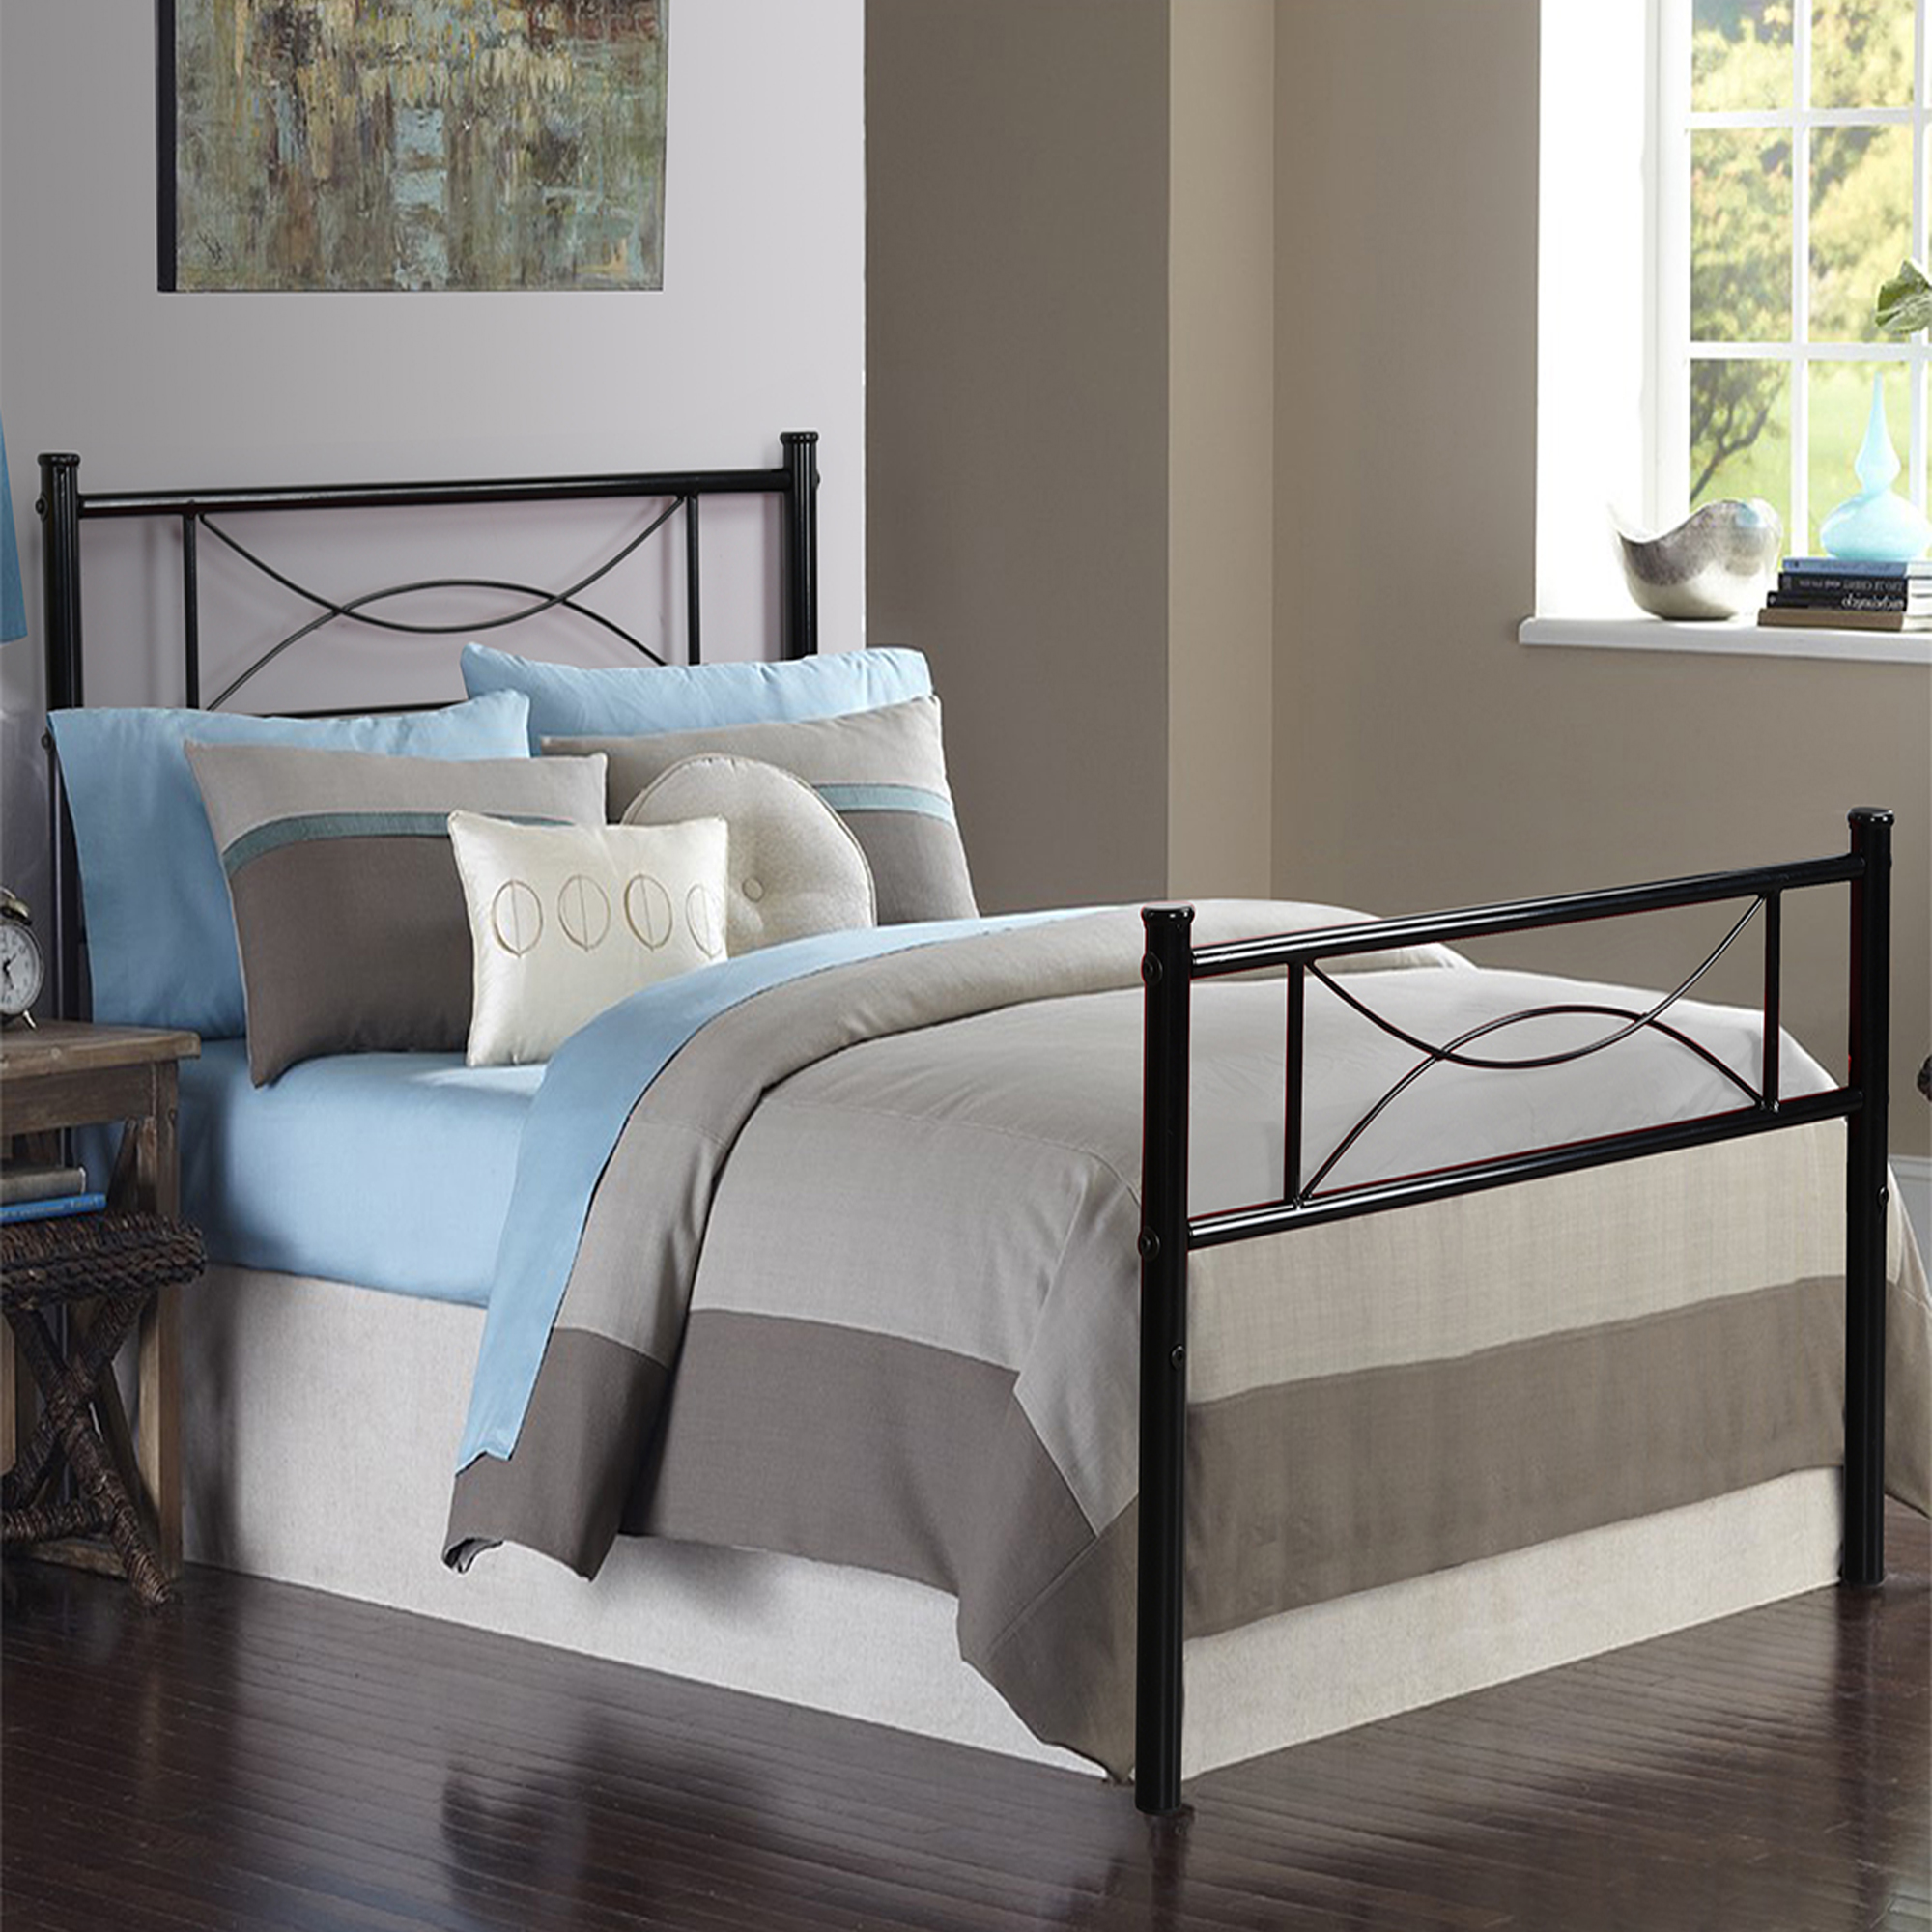 cheerwing high metal platform bed frame with two bowknot assembly